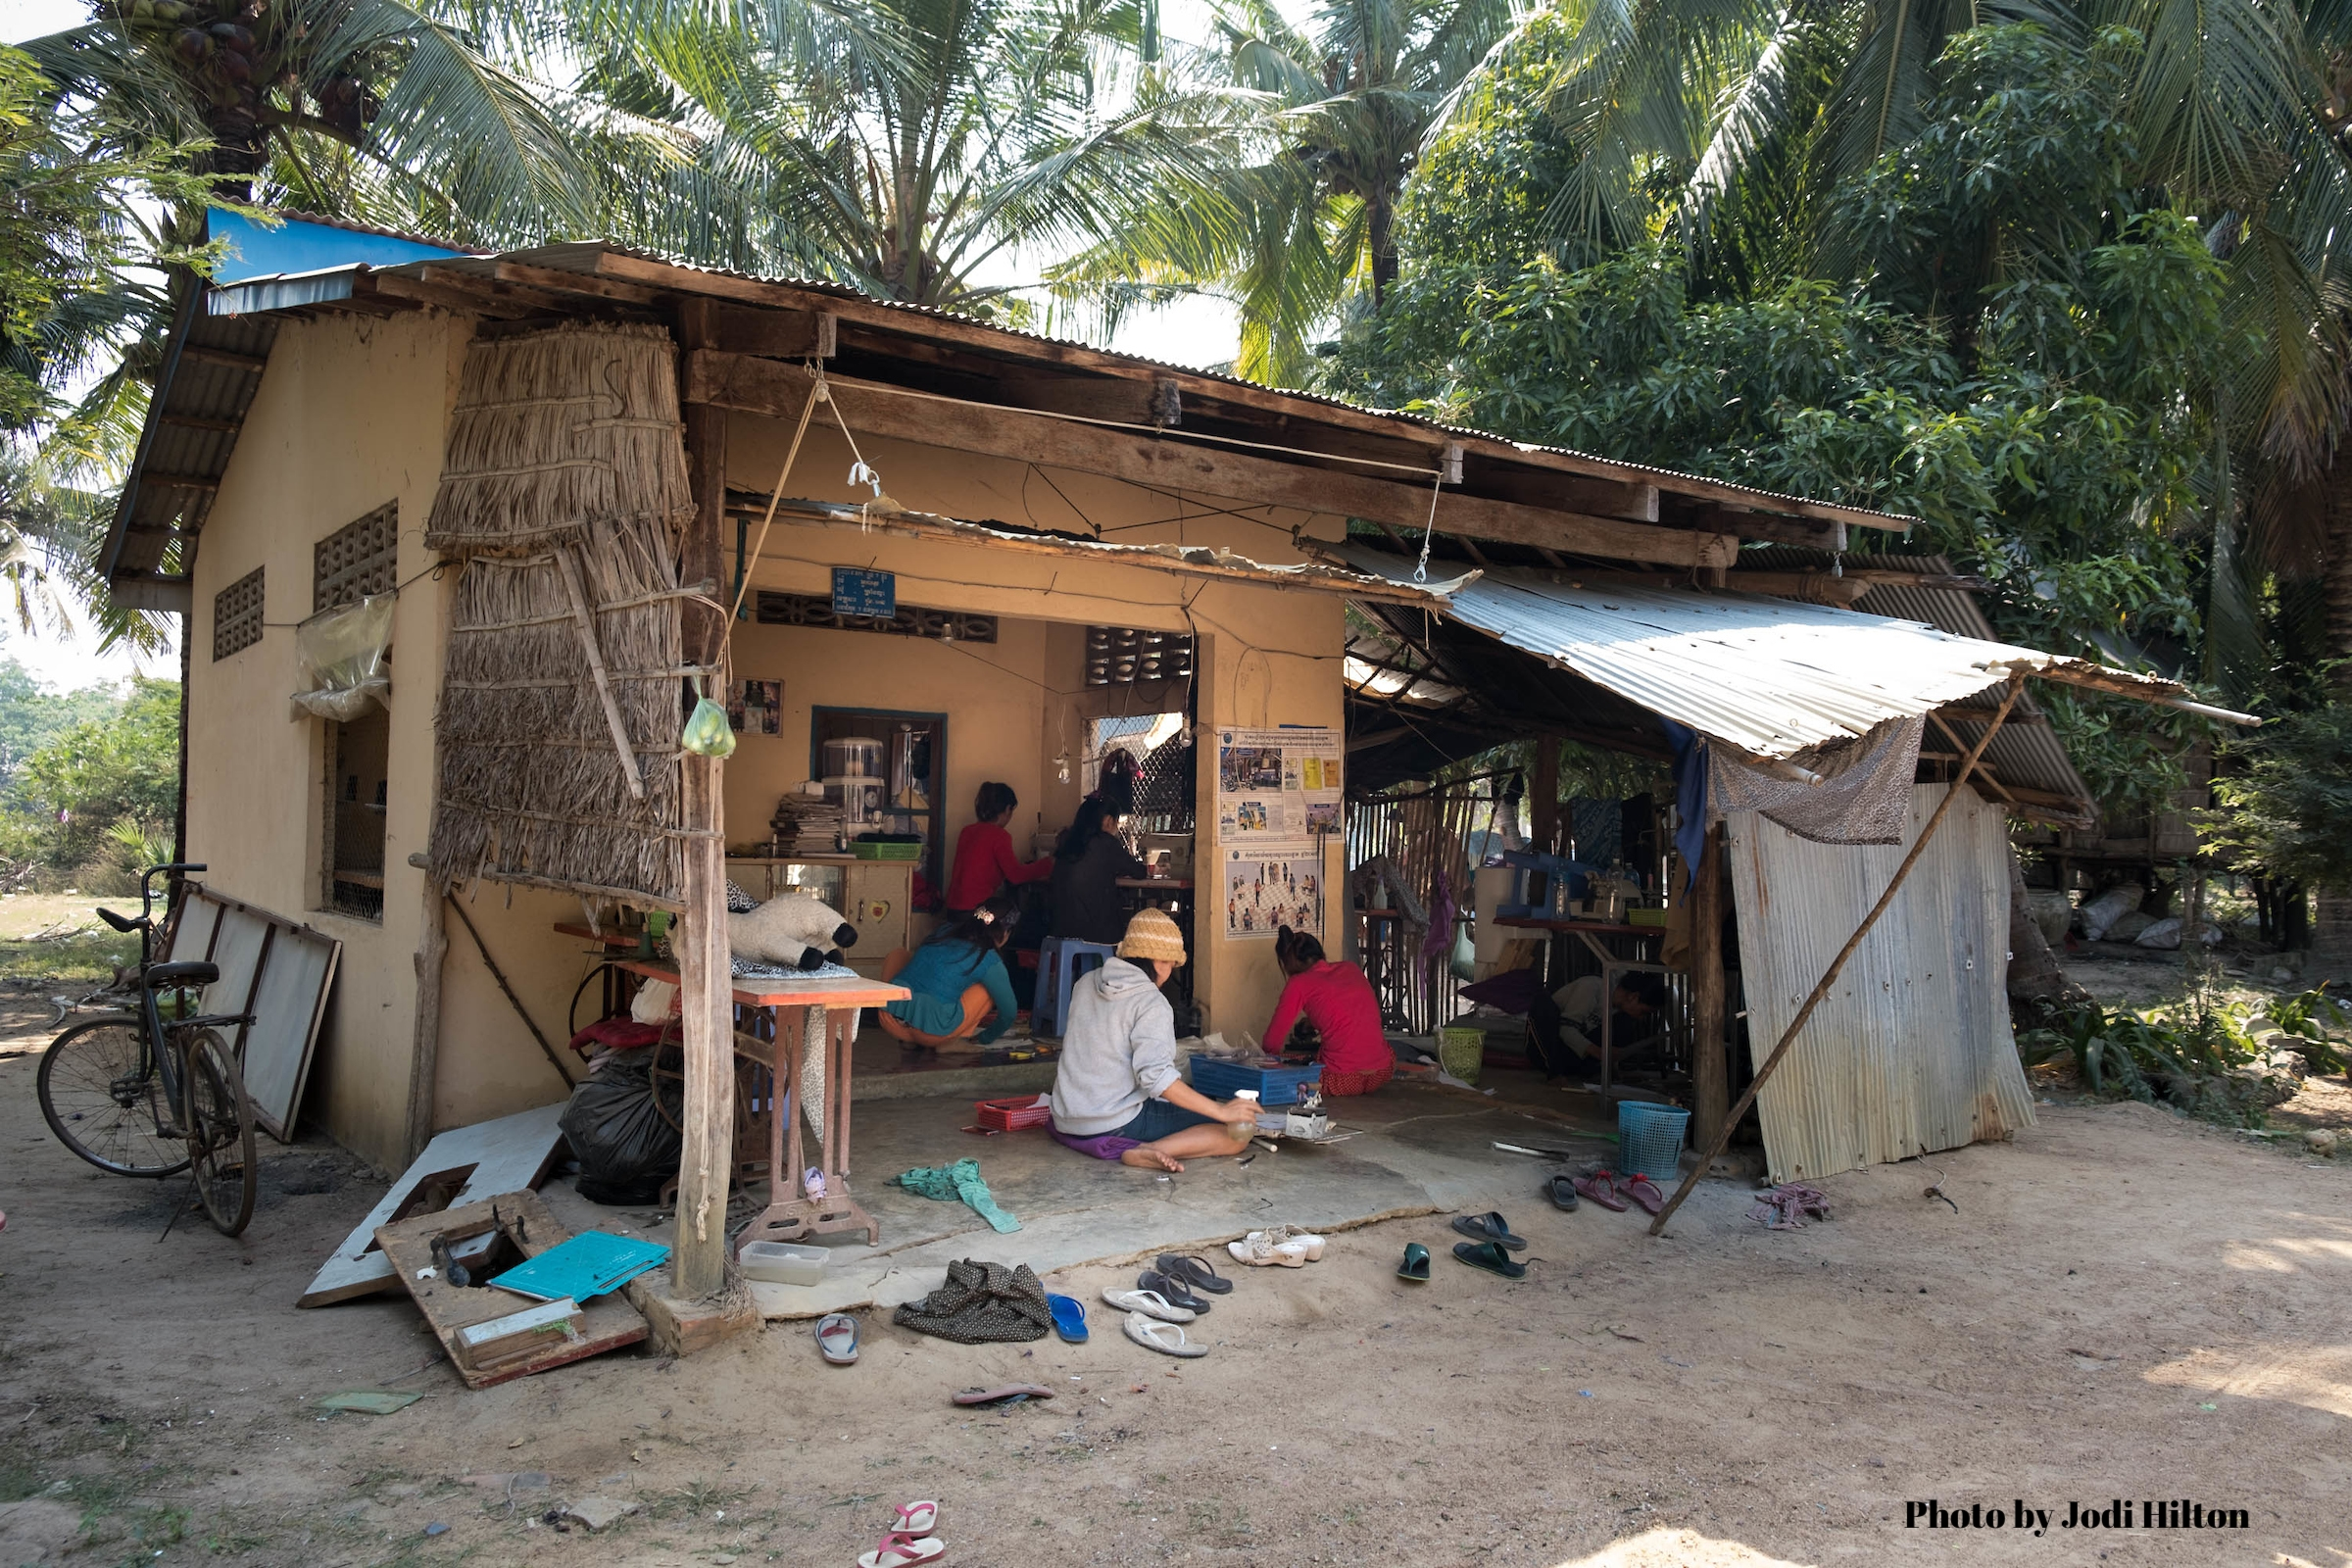 Red Dirt Road workshop for the last six year in saly's family home